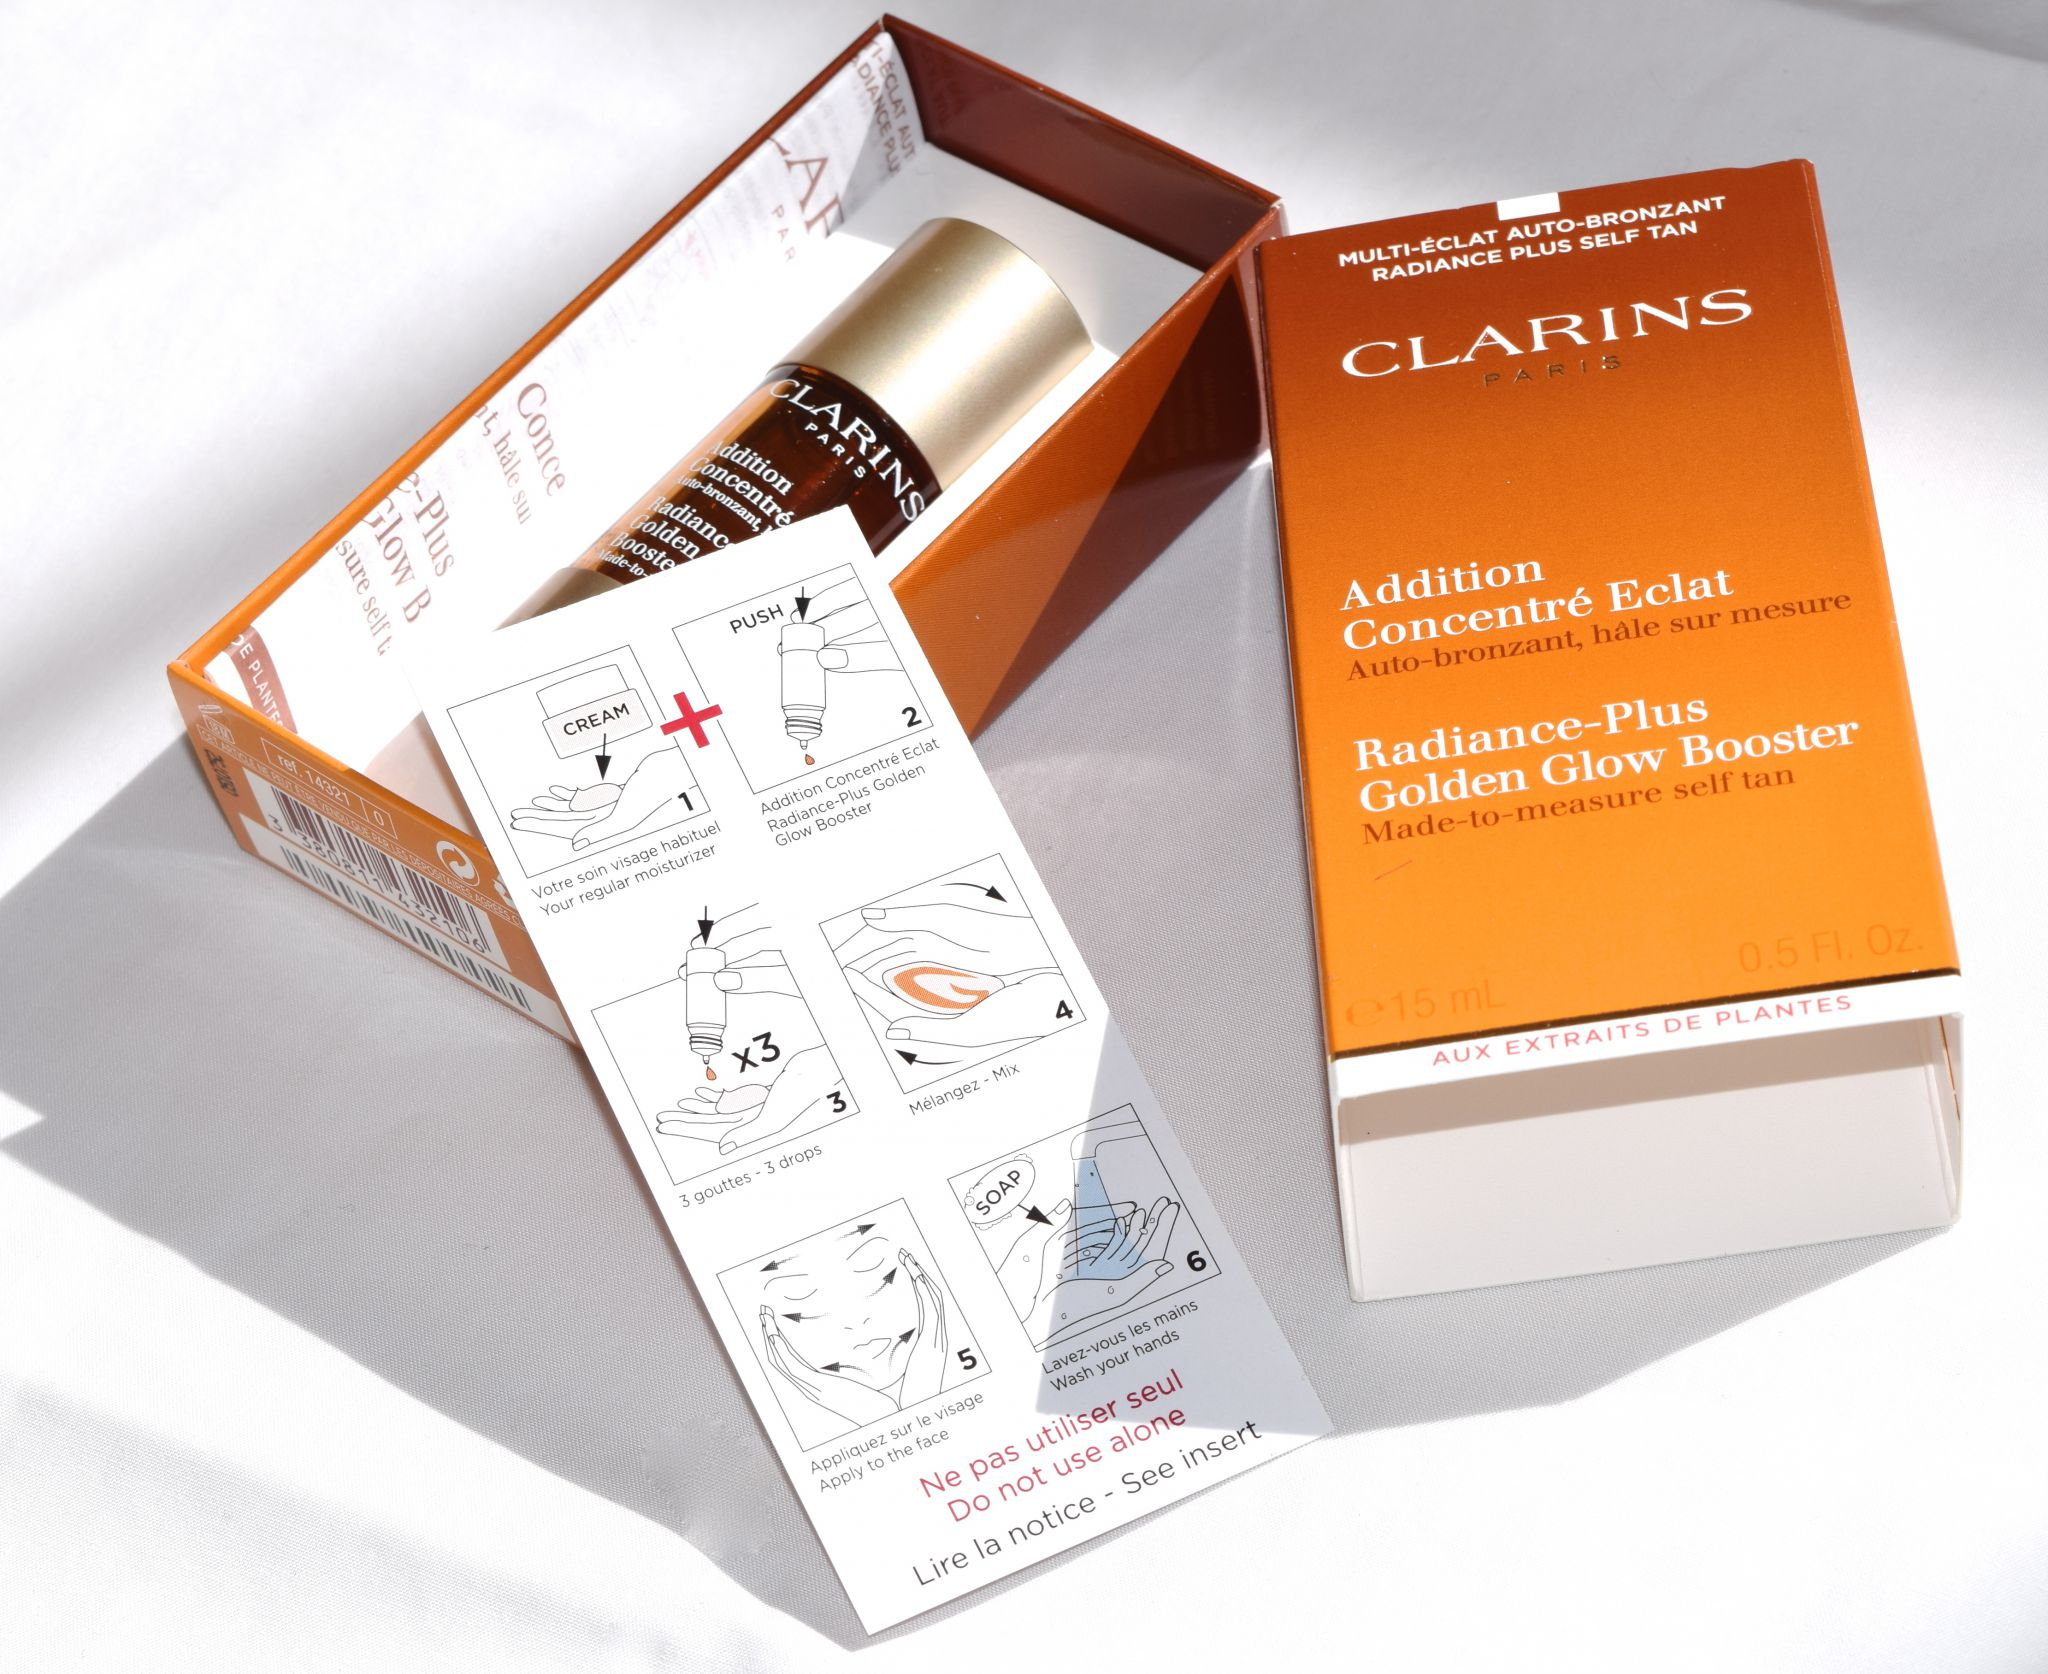 Clarins Radiance-Plus Golden Glow Booster 1